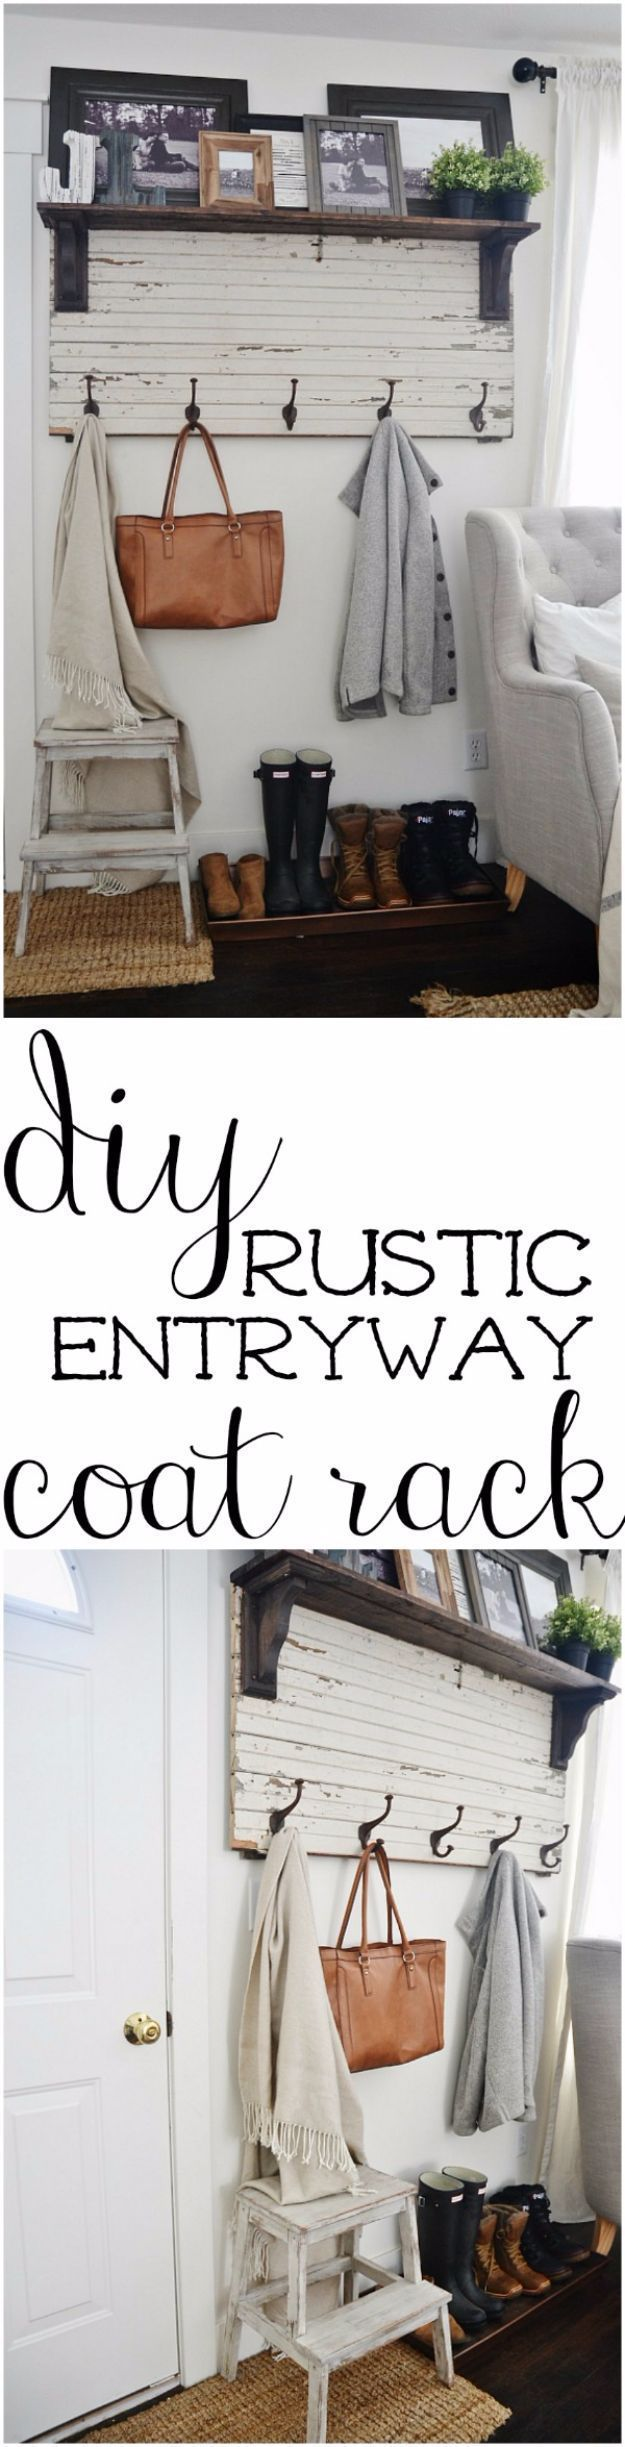 Best Country Decor Ideas - DIY Rustic Entryway Coat Rack - Rustic Farmhouse Decor Tutorials and Easy Vintage Shabby Chic Home Decor for Kitchen Living Room and Bathroom - Creative Country Crafts Rustic Wall Art and Accessories to Make and Sell diyjoy.com/... #style #shopping #styles #outfit #pretty #girl #girls #beauty #beautiful #me #cute #stylish #photooftheday #swag #dress #shoes #diy #design #fashion #homedecor